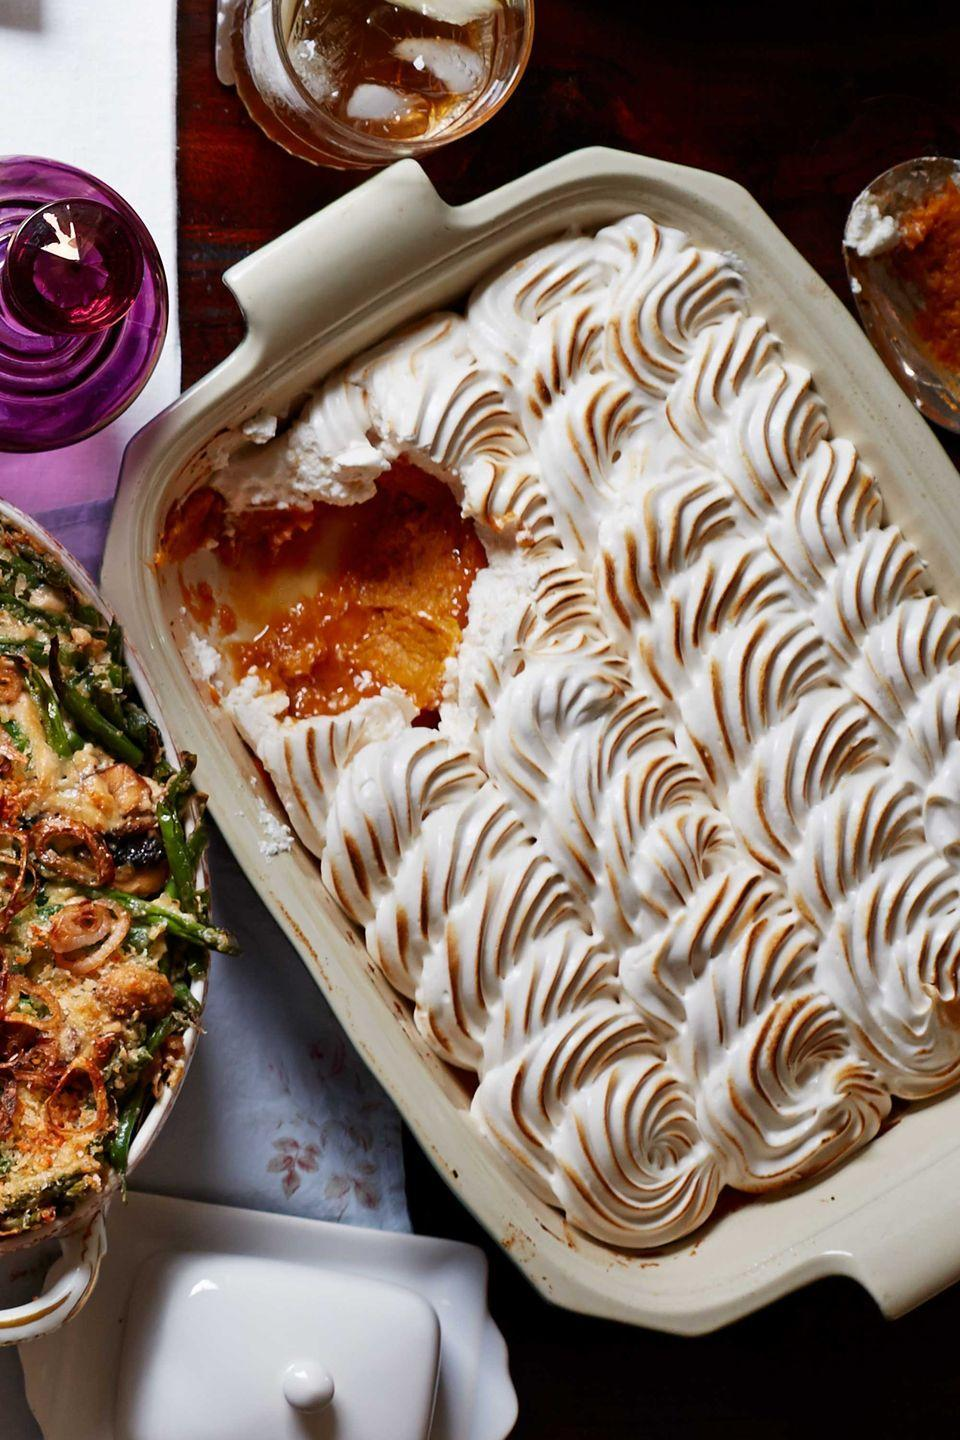 """<p>A sweet update to a holiday must-have. Roast and mash the sweet potatoes up to 2 days ahead and chill. Let stand at room temperature 30 minutes before proceeding with the recipe.</p><p><strong><a href=""""https://www.countryliving.com/food-drinks/recipes/a5865/maple-meringue-potato-casserole-recipe-clx1114/"""" rel=""""nofollow noopener"""" target=""""_blank"""" data-ylk=""""slk:Get the recipe"""" class=""""link rapid-noclick-resp"""">Get the recipe</a>.</strong></p>"""